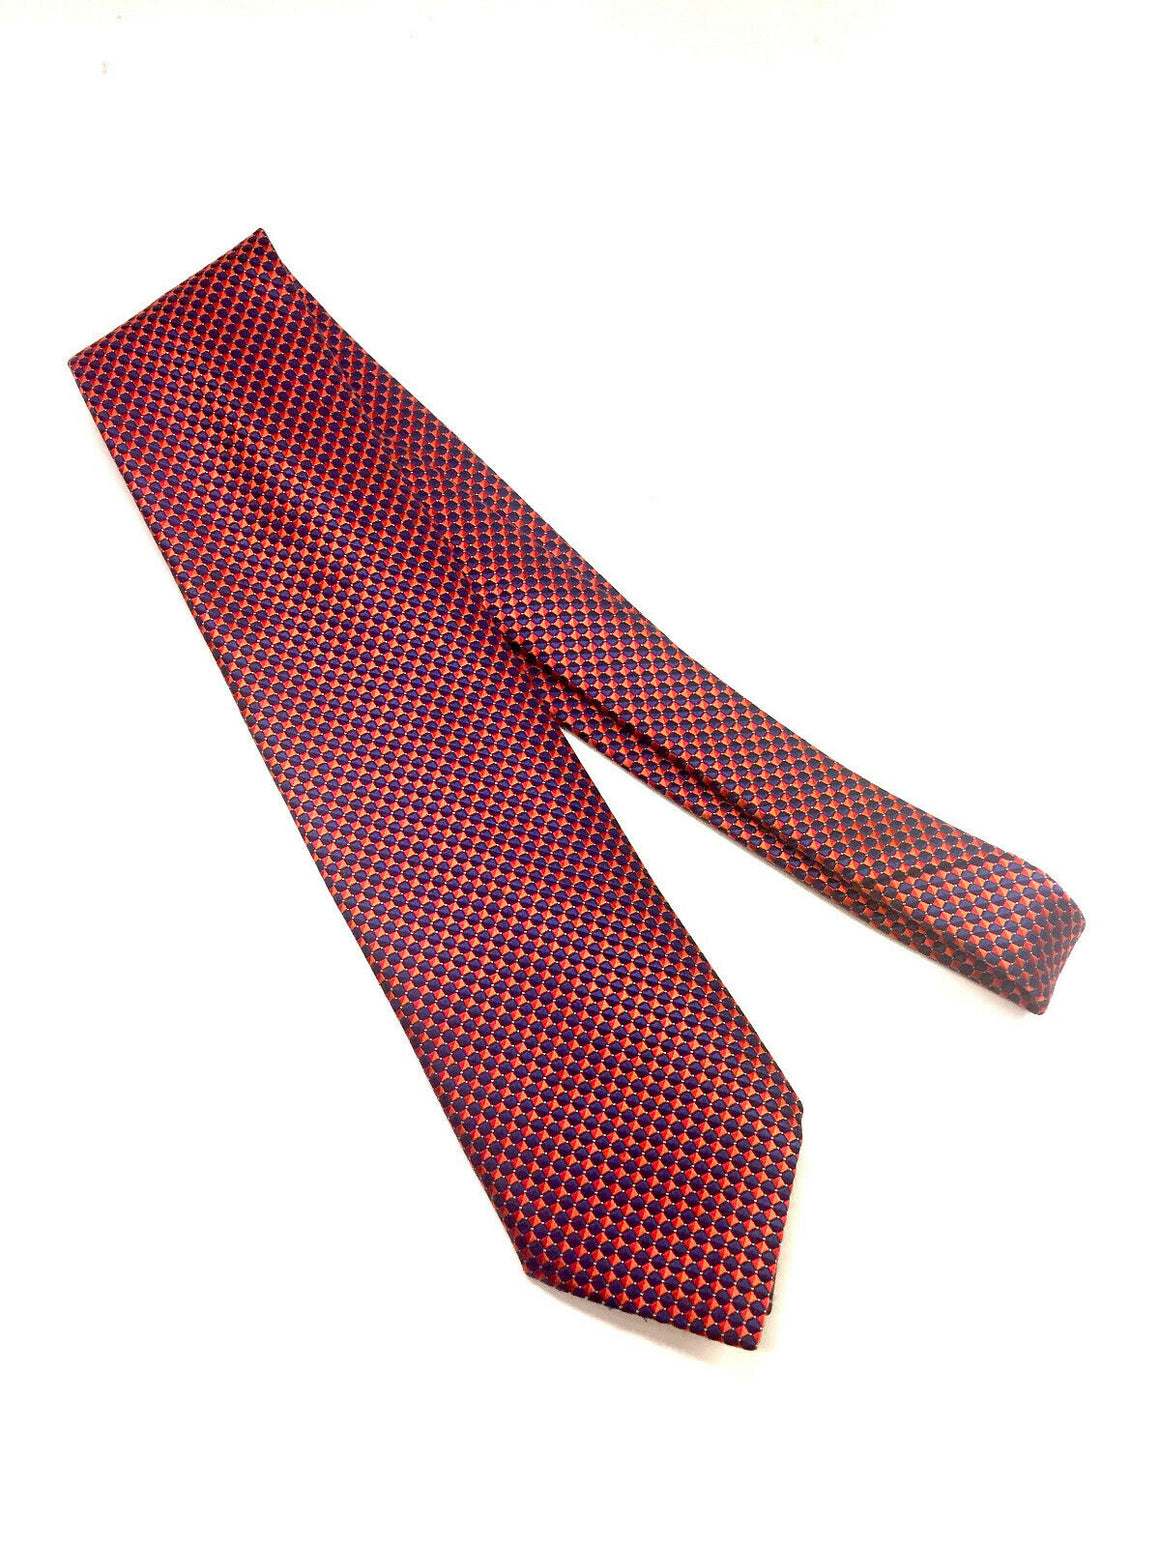 ERMENEGILDO ZEGNA Navy/Red Checkerboard-Patterned Textured Silk Men's Neck Tie